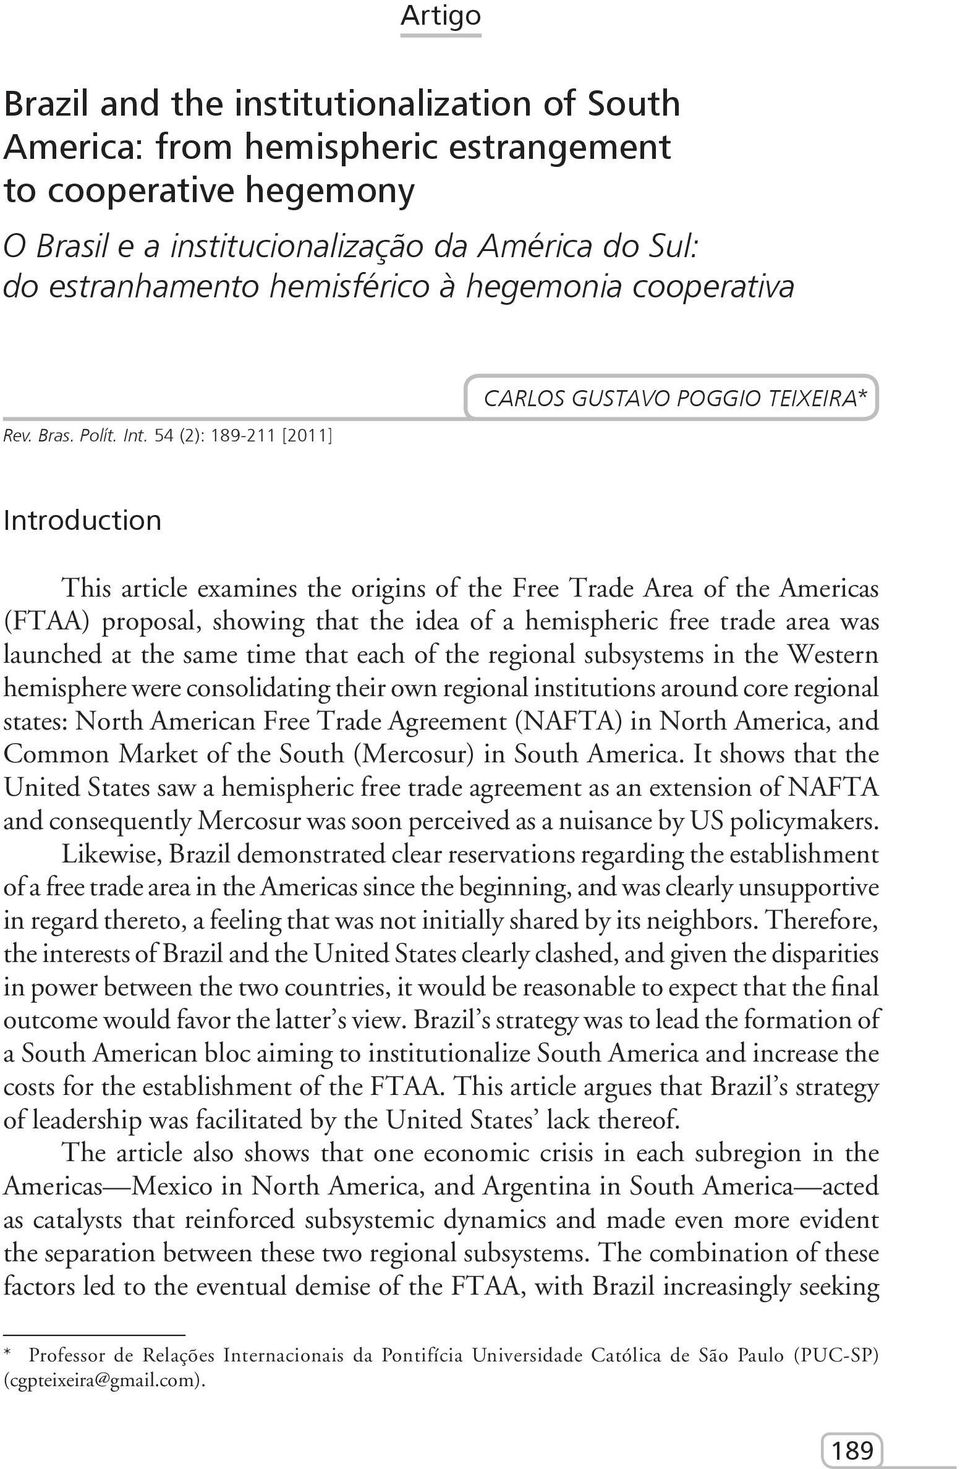 54 (2): 189-211 [2011] Carlos Gustavo Poggio Teixeira* Introduction This article examines the origins of the Free Trade Area of the Americas (FTAA) proposal, showing that the idea of a hemispheric